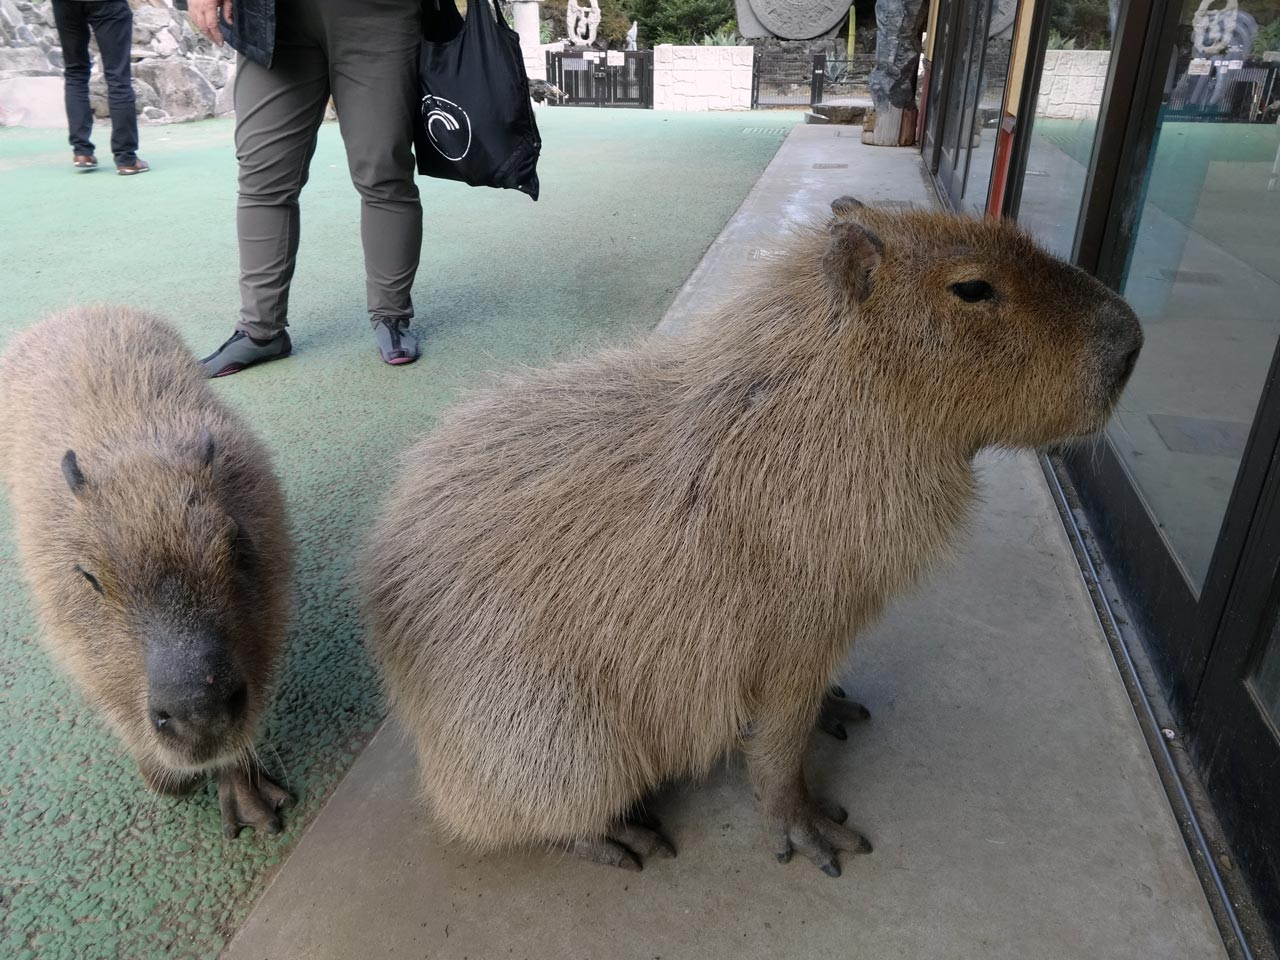 two capybara wiating by a door